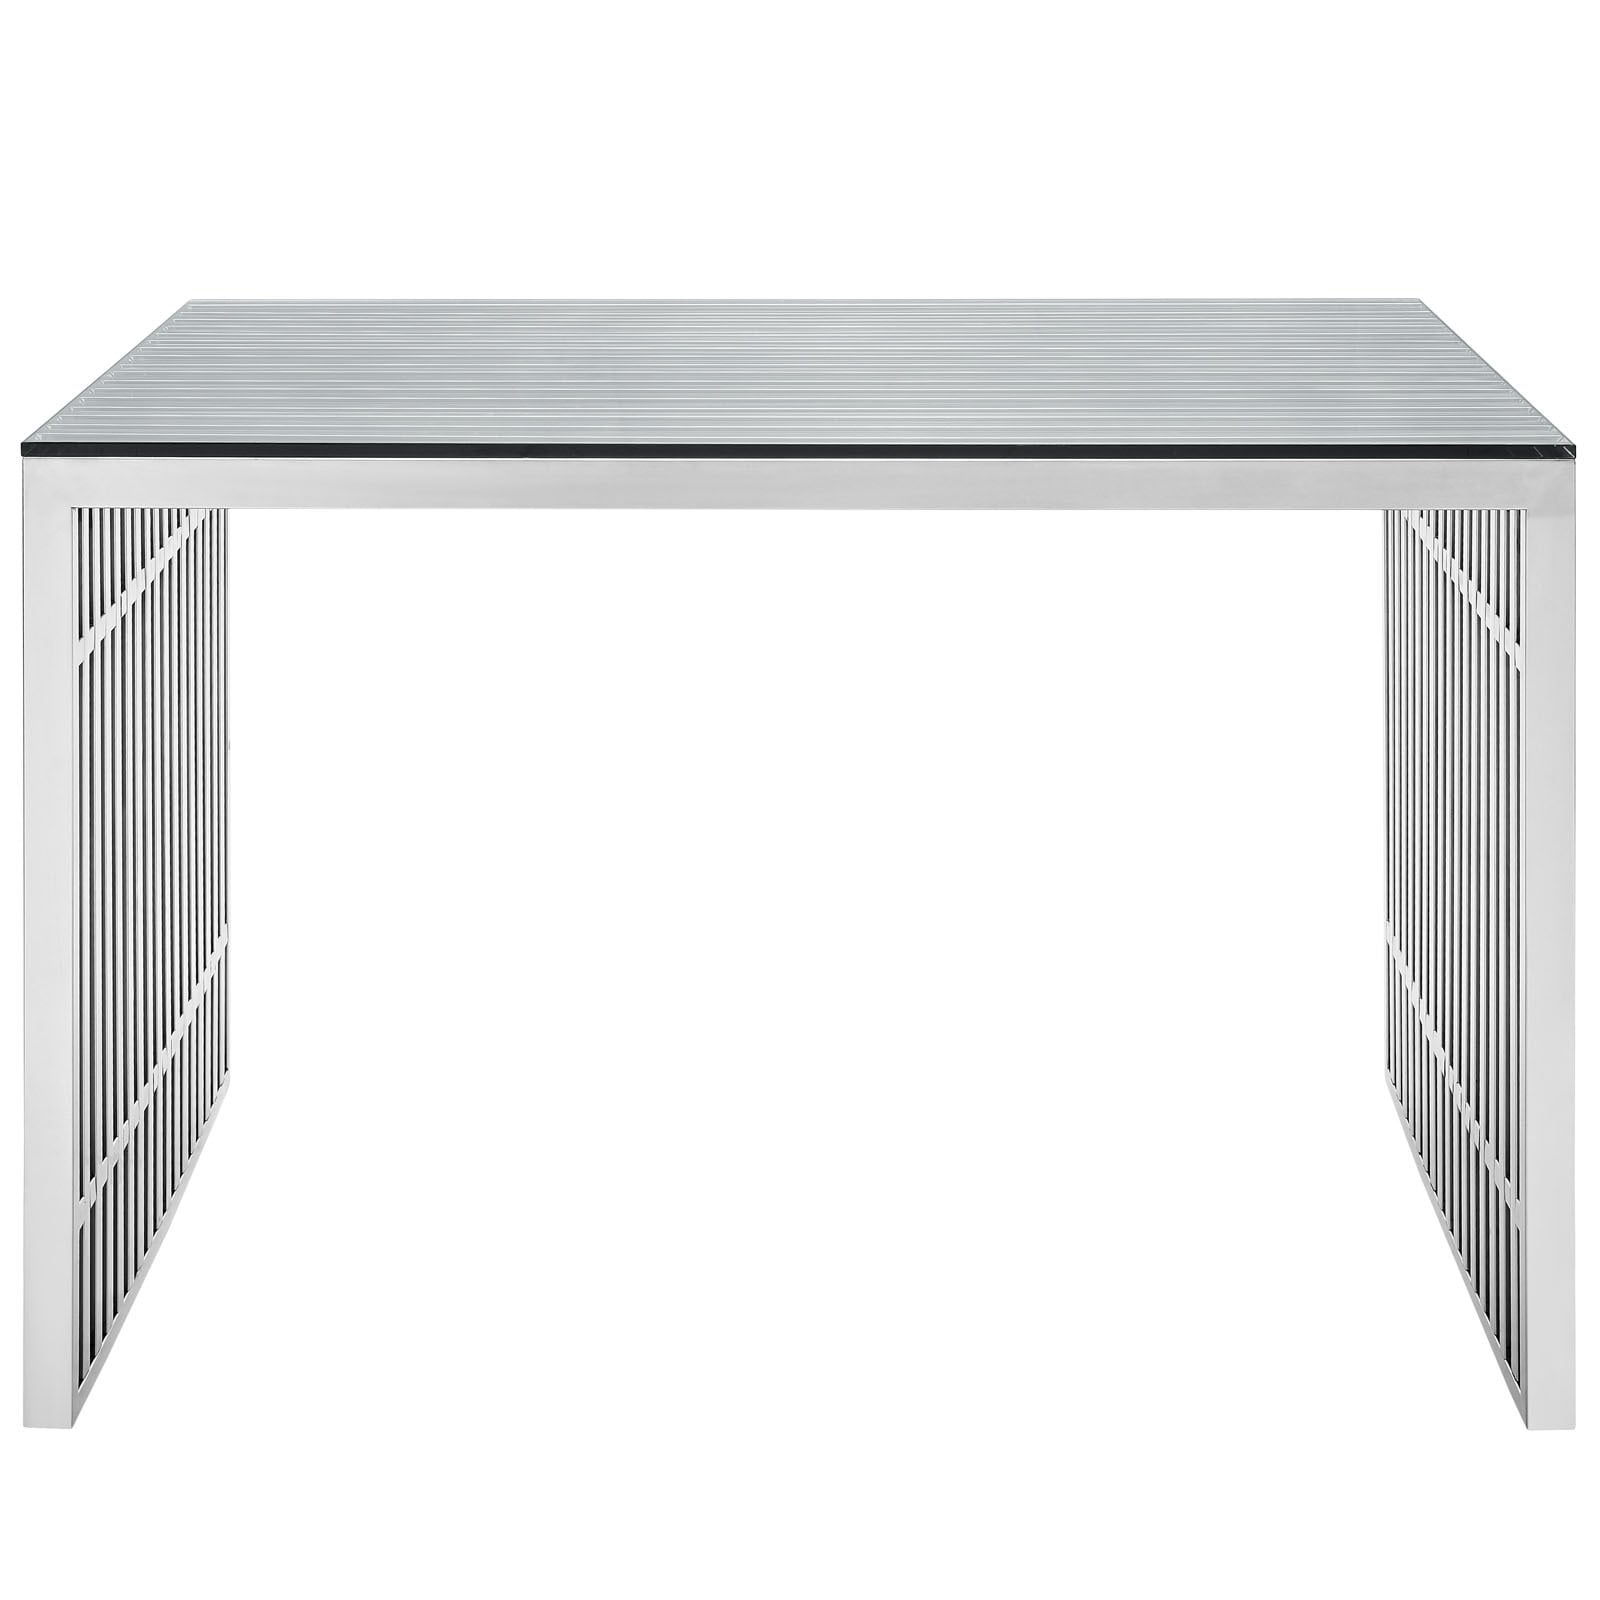 gridiron stainless steel desk  free shipping today  overstockcom . gridiron stainless steel desk  free shipping today  overstock